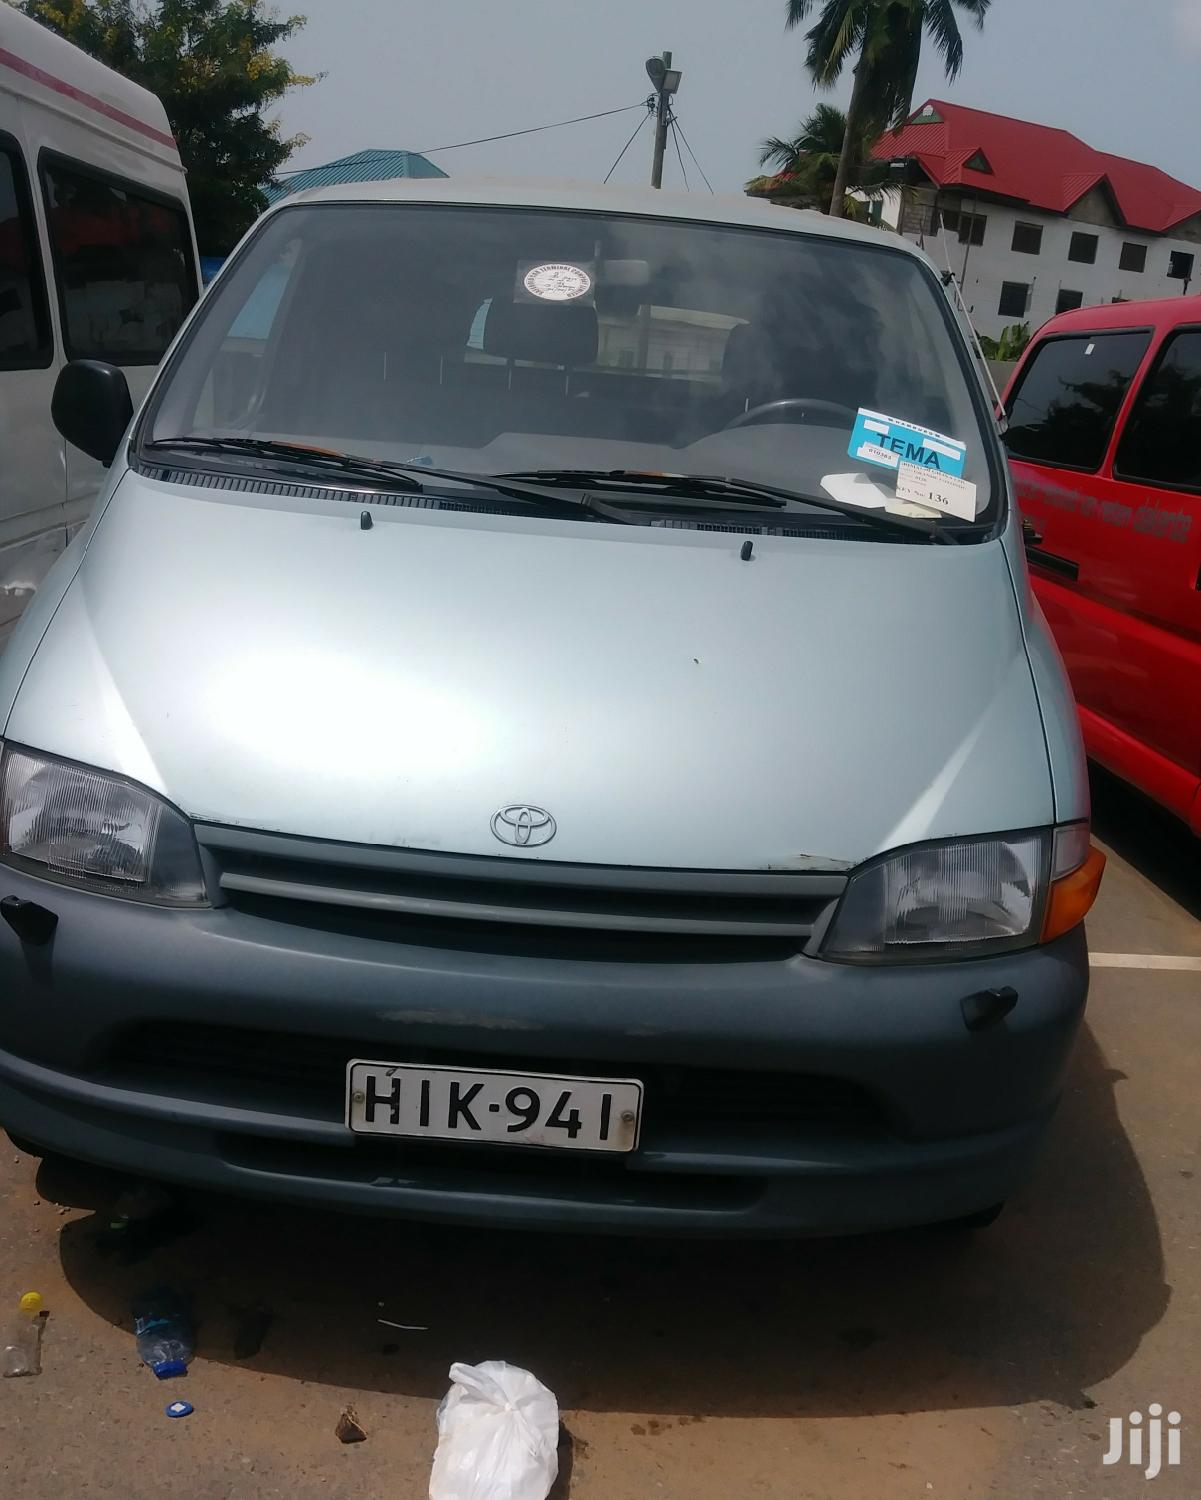 Toyota Hiace 2012 | Buses & Microbuses for sale in Achimota, Greater Accra, Ghana